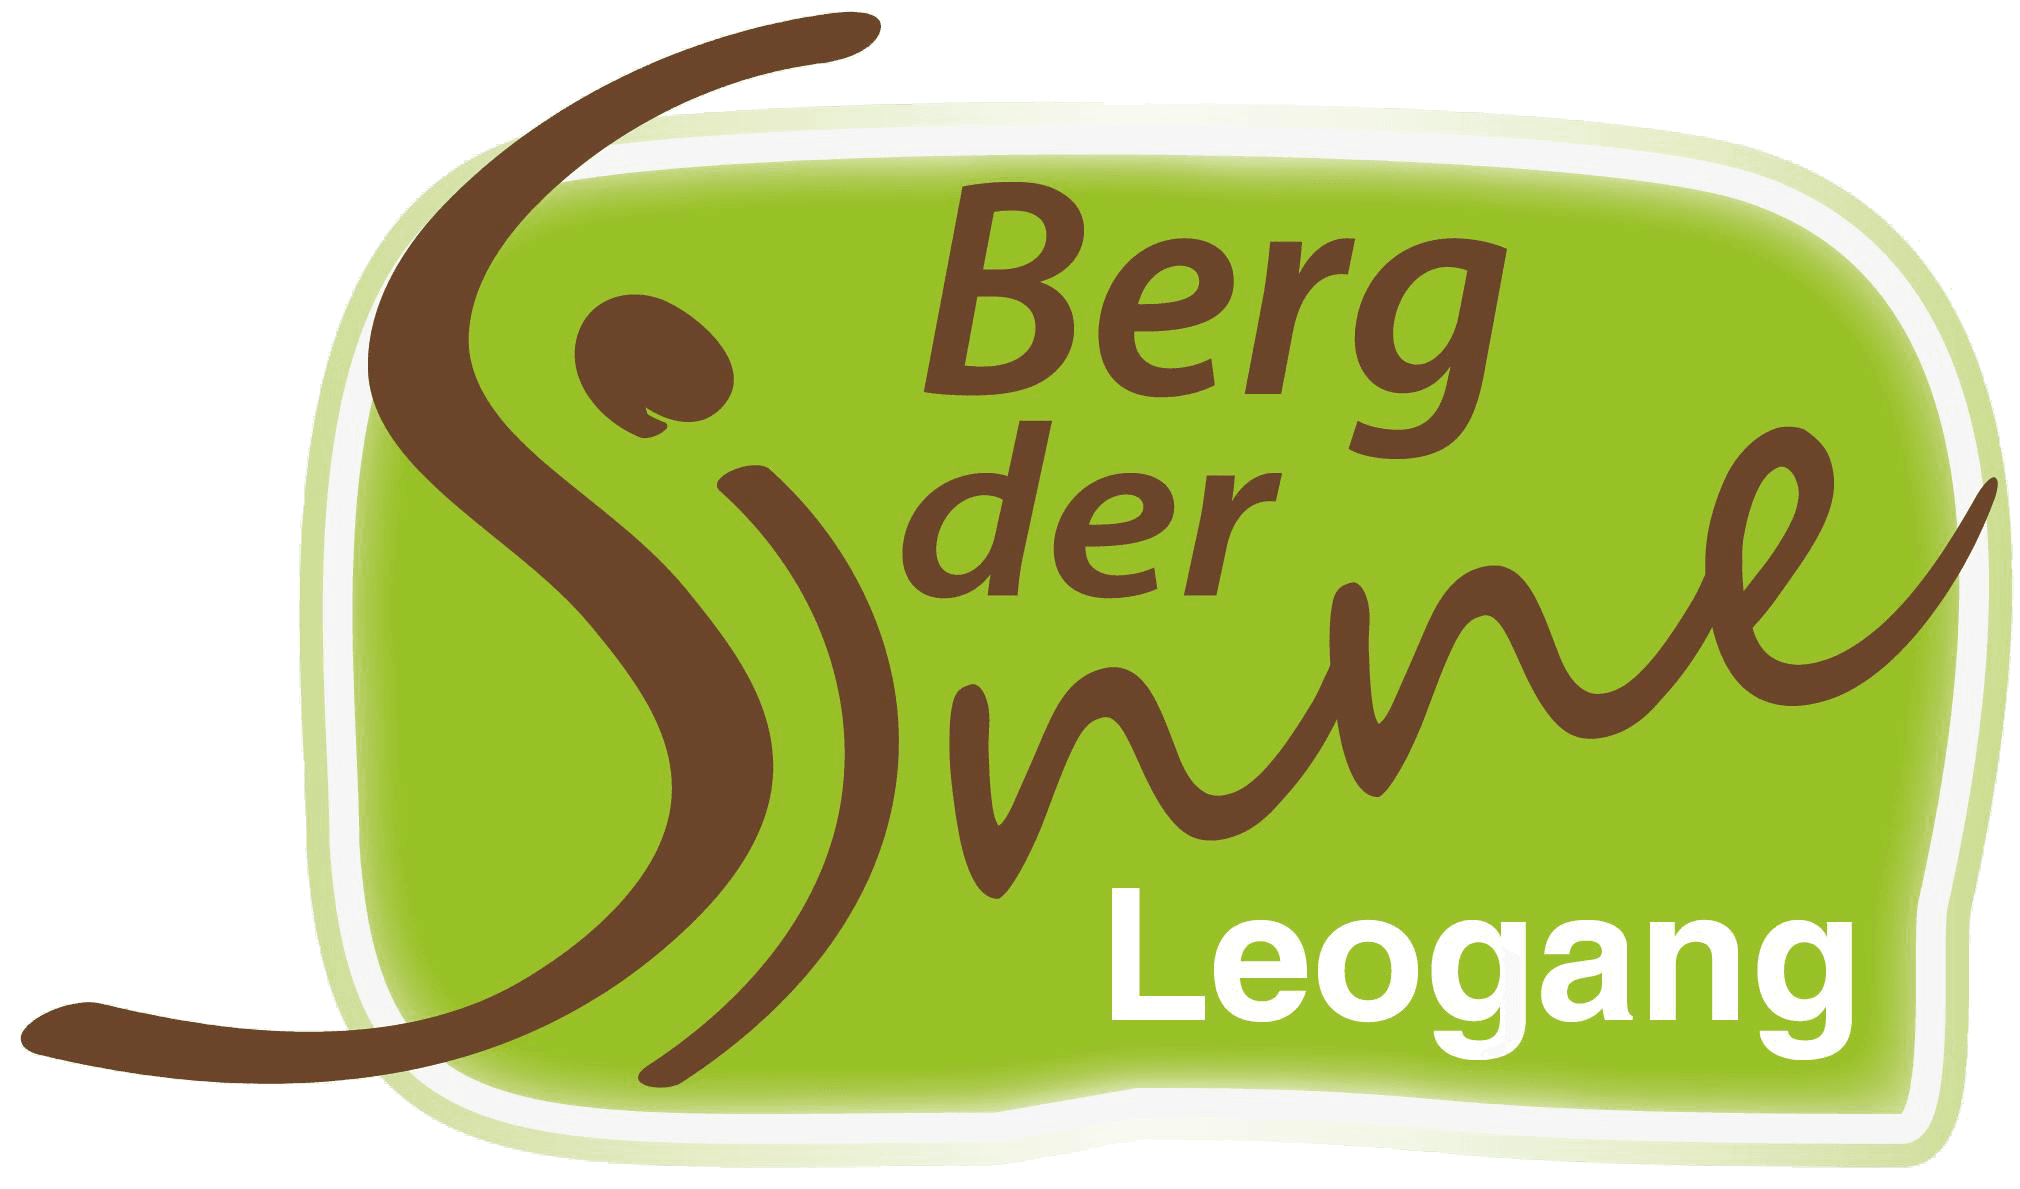 Image not available: 'bergDerSinne.png'